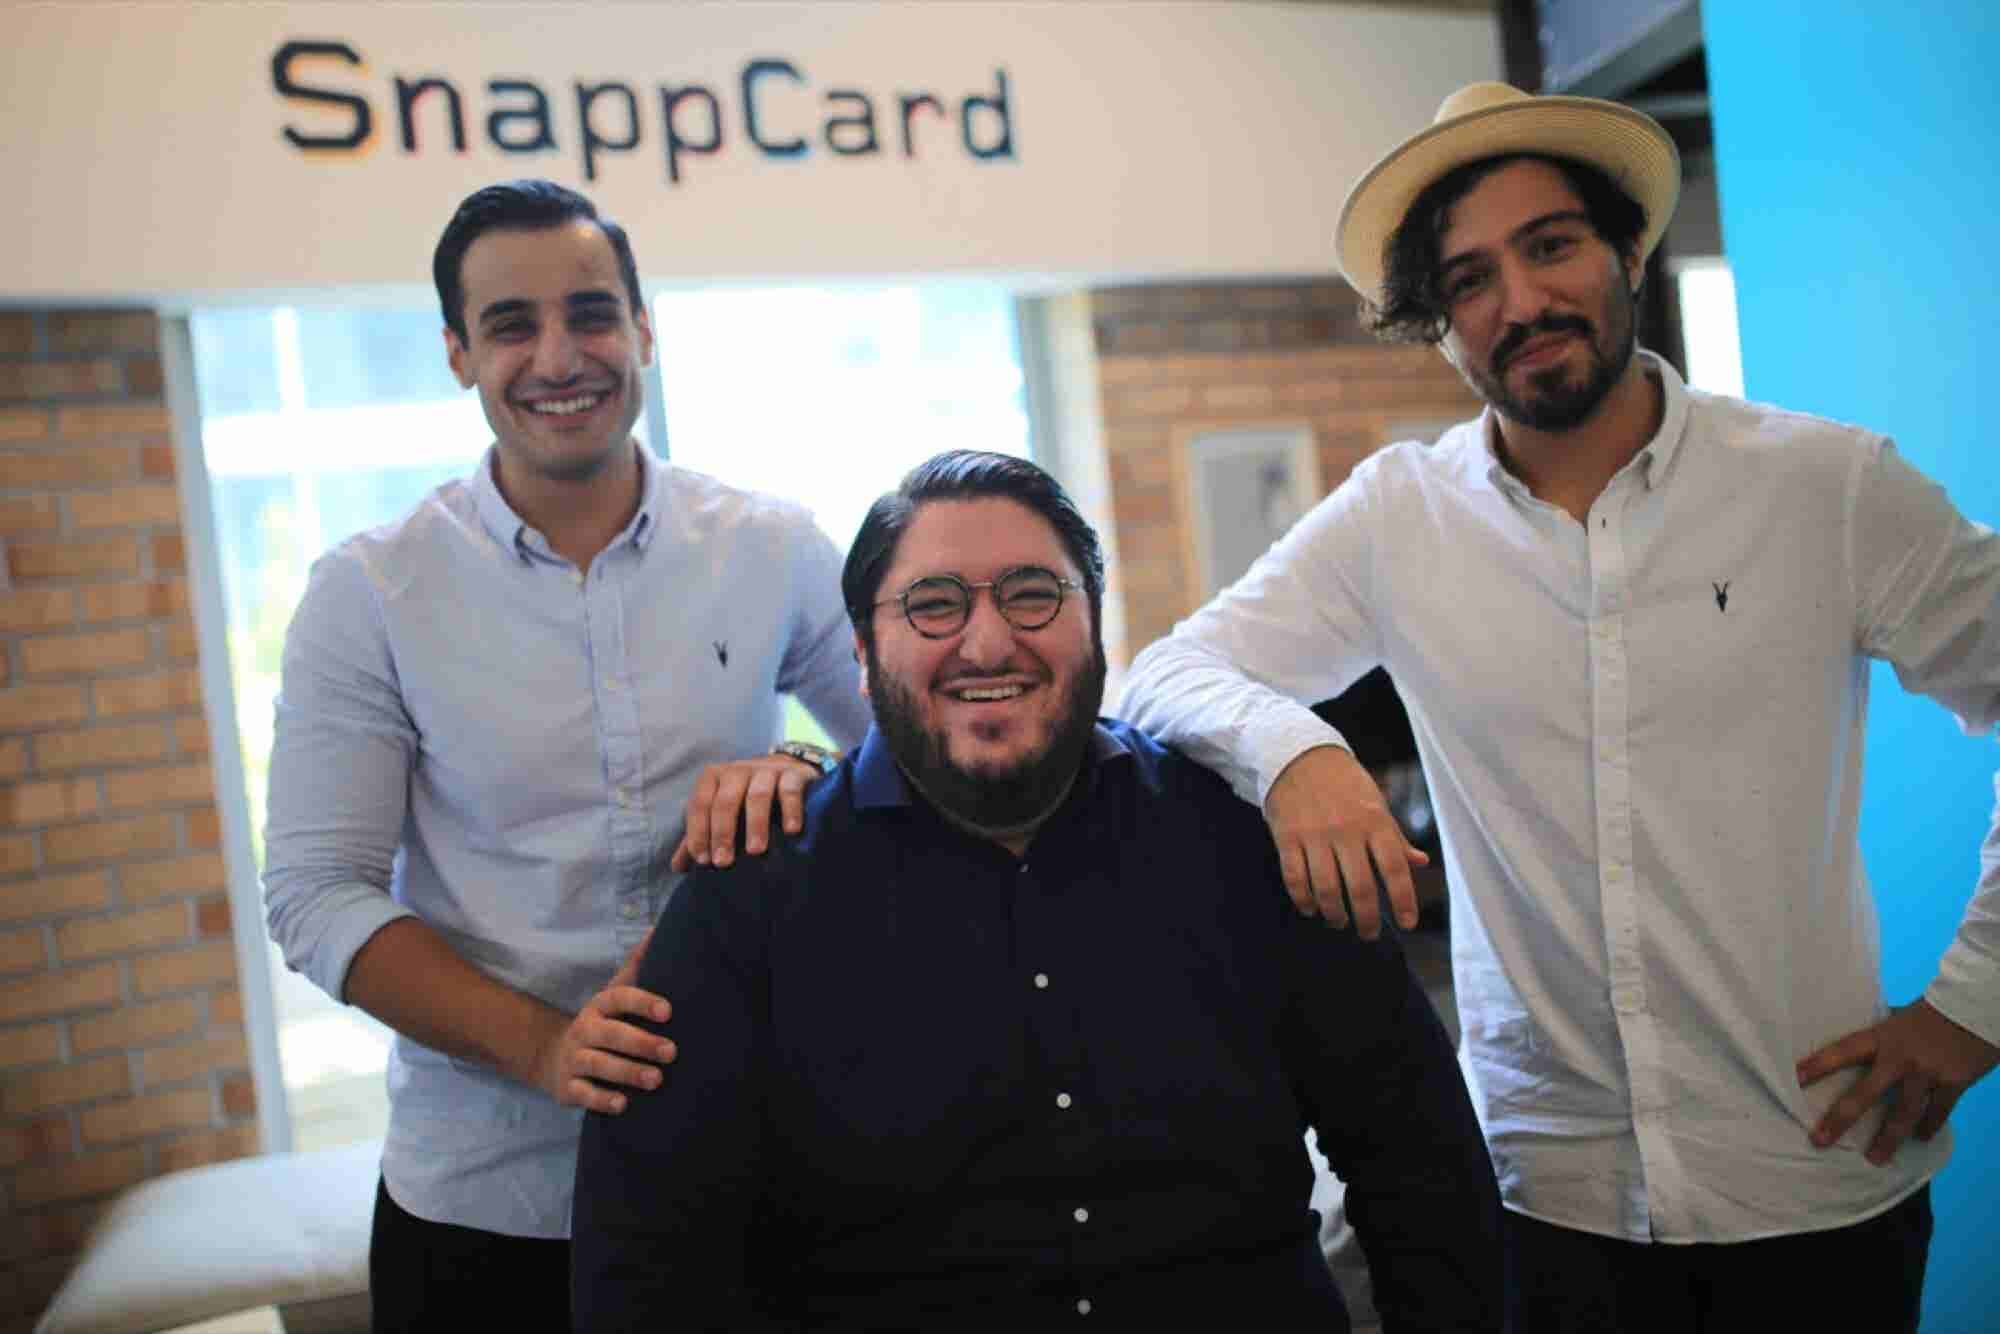 Inspiring Loyalty: Alborz Toofani, Founder And CEO Of Snappcard